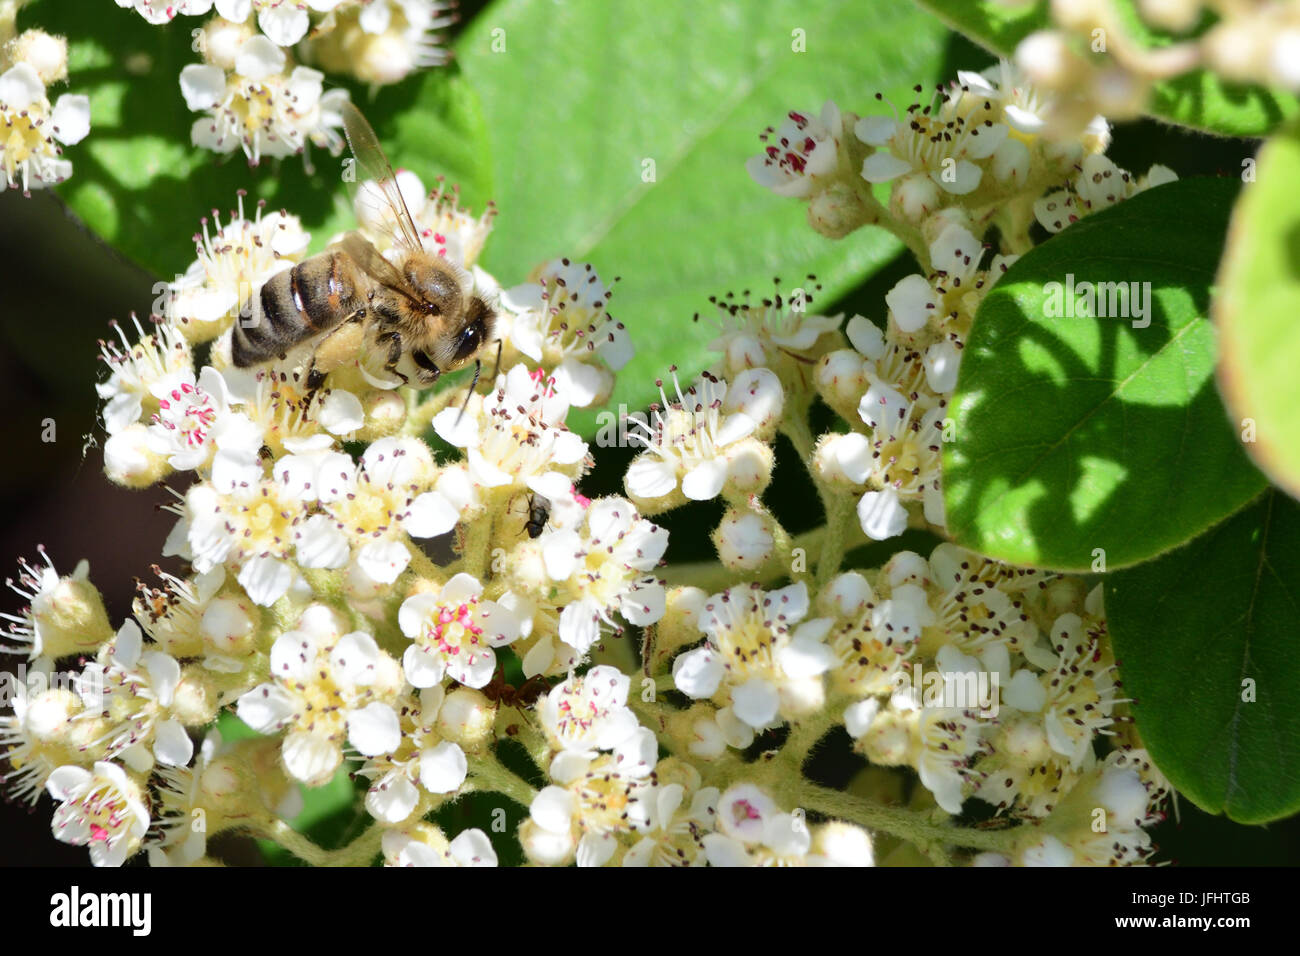 Bee Pollinating Flowers - Stock Image